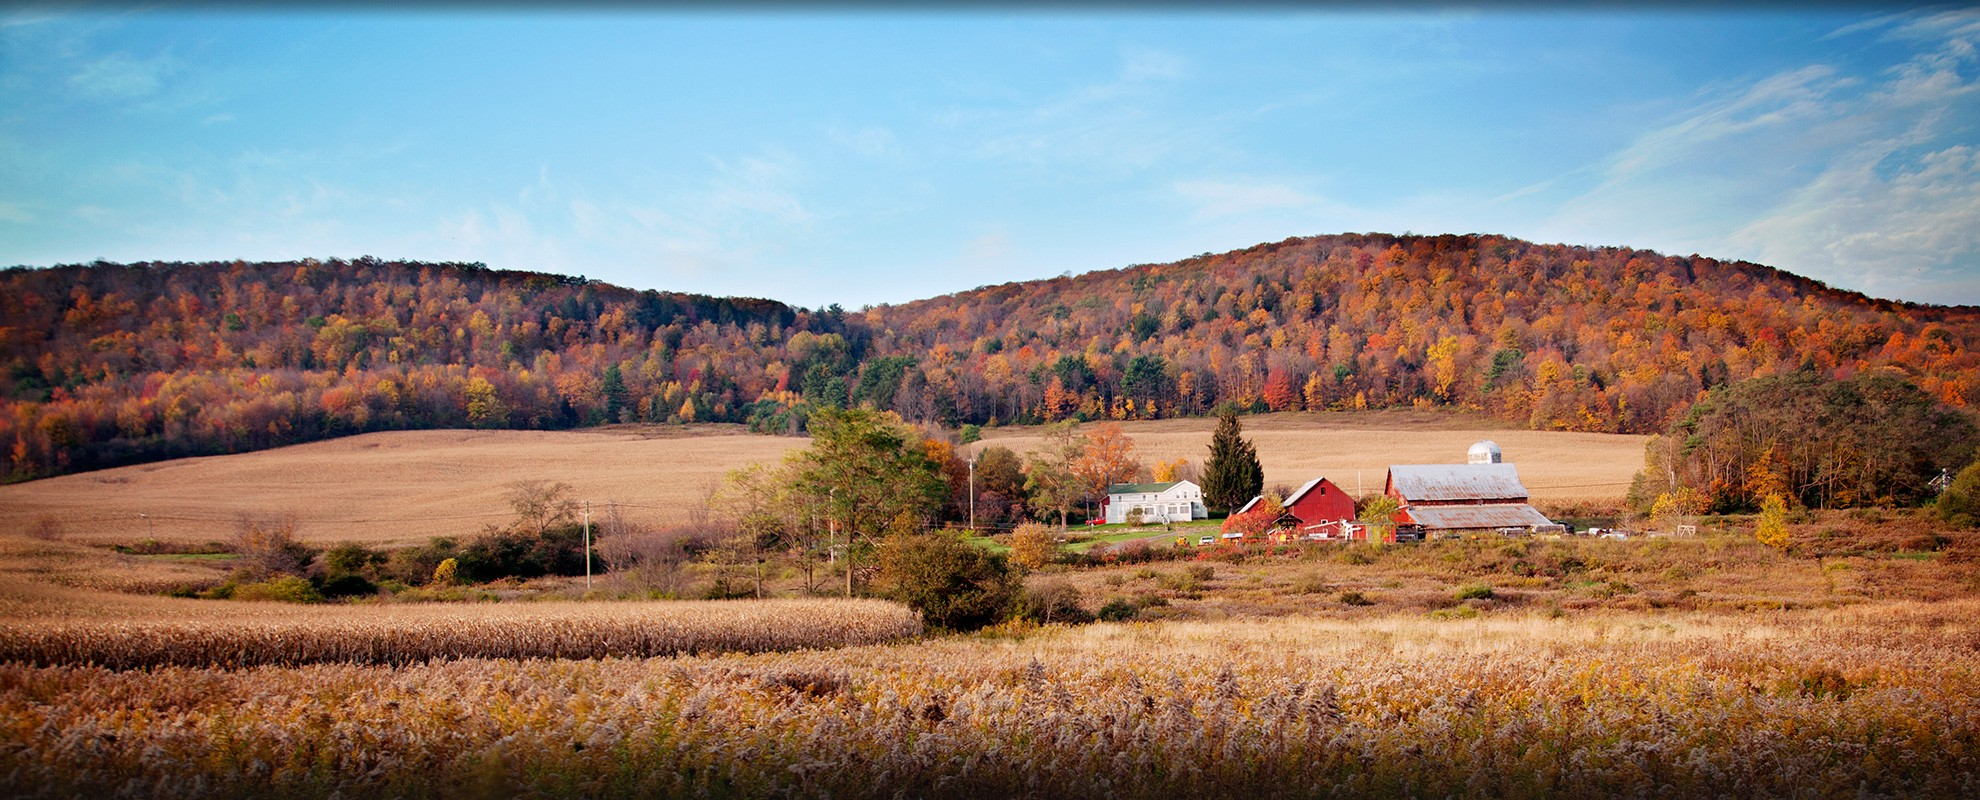 Upstate New York, near the Town of Dryden.